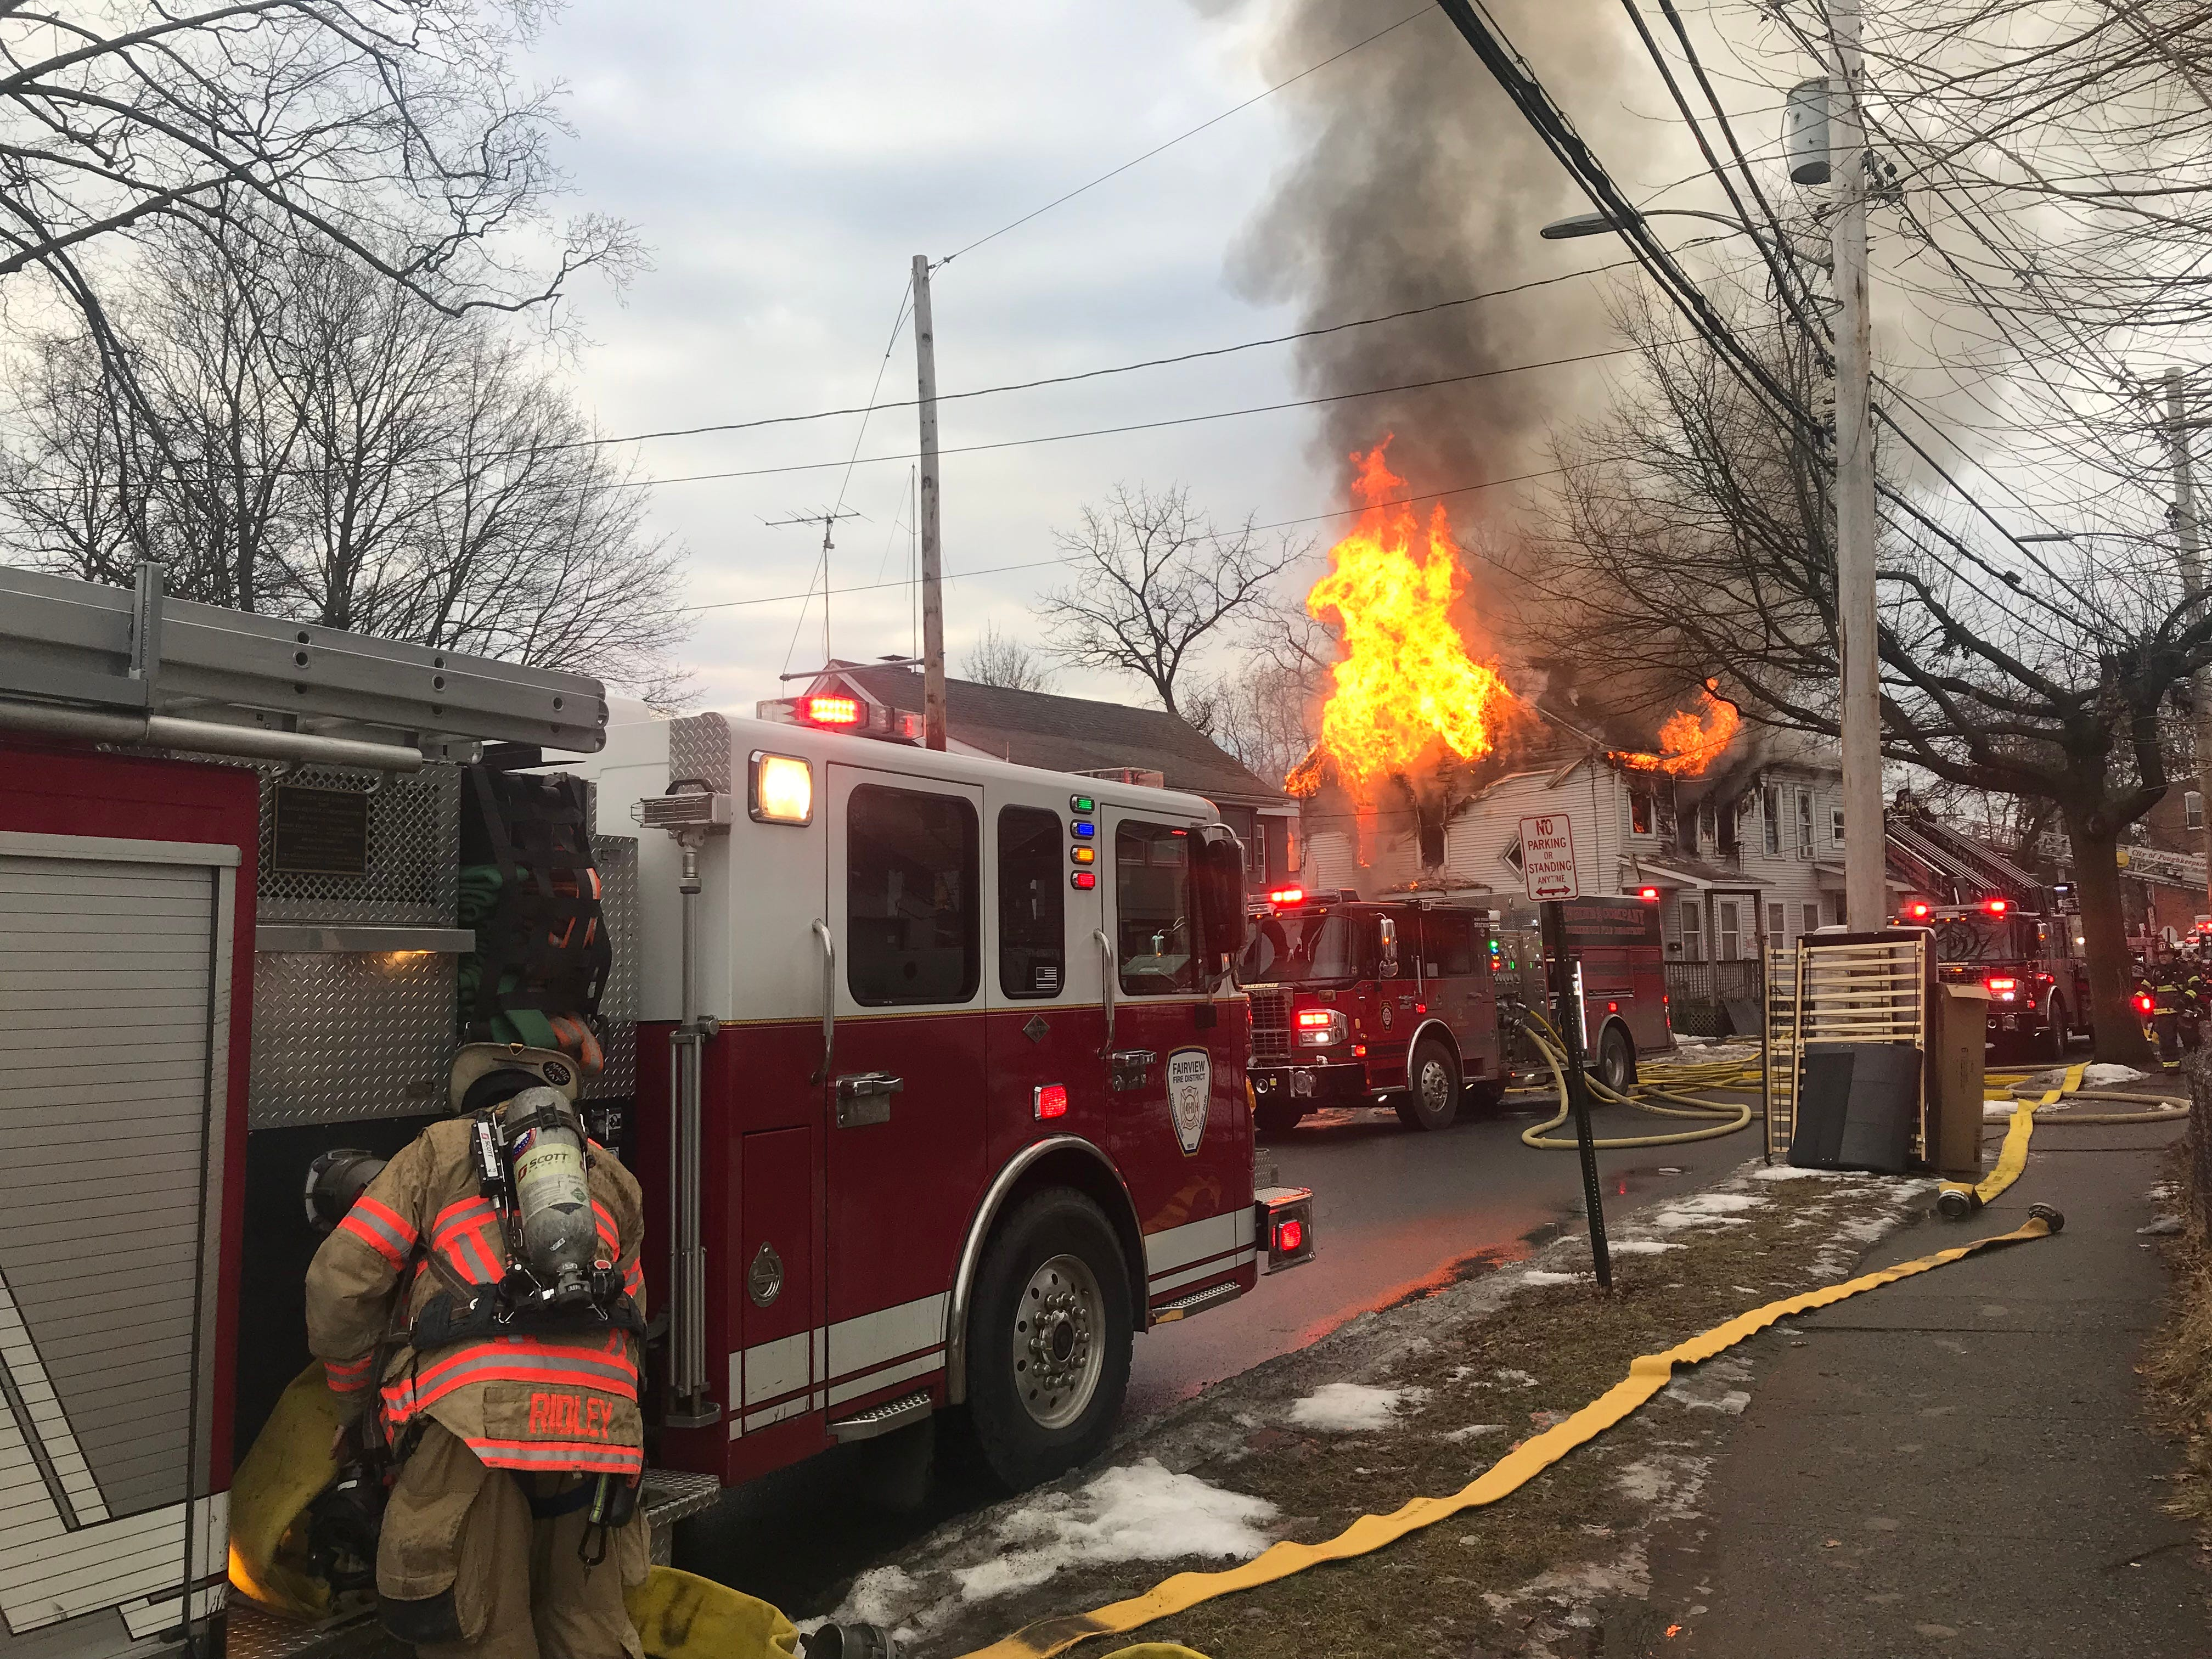 Firefighters responded to a blaze on Winnikee Avenue Tuesday morning.